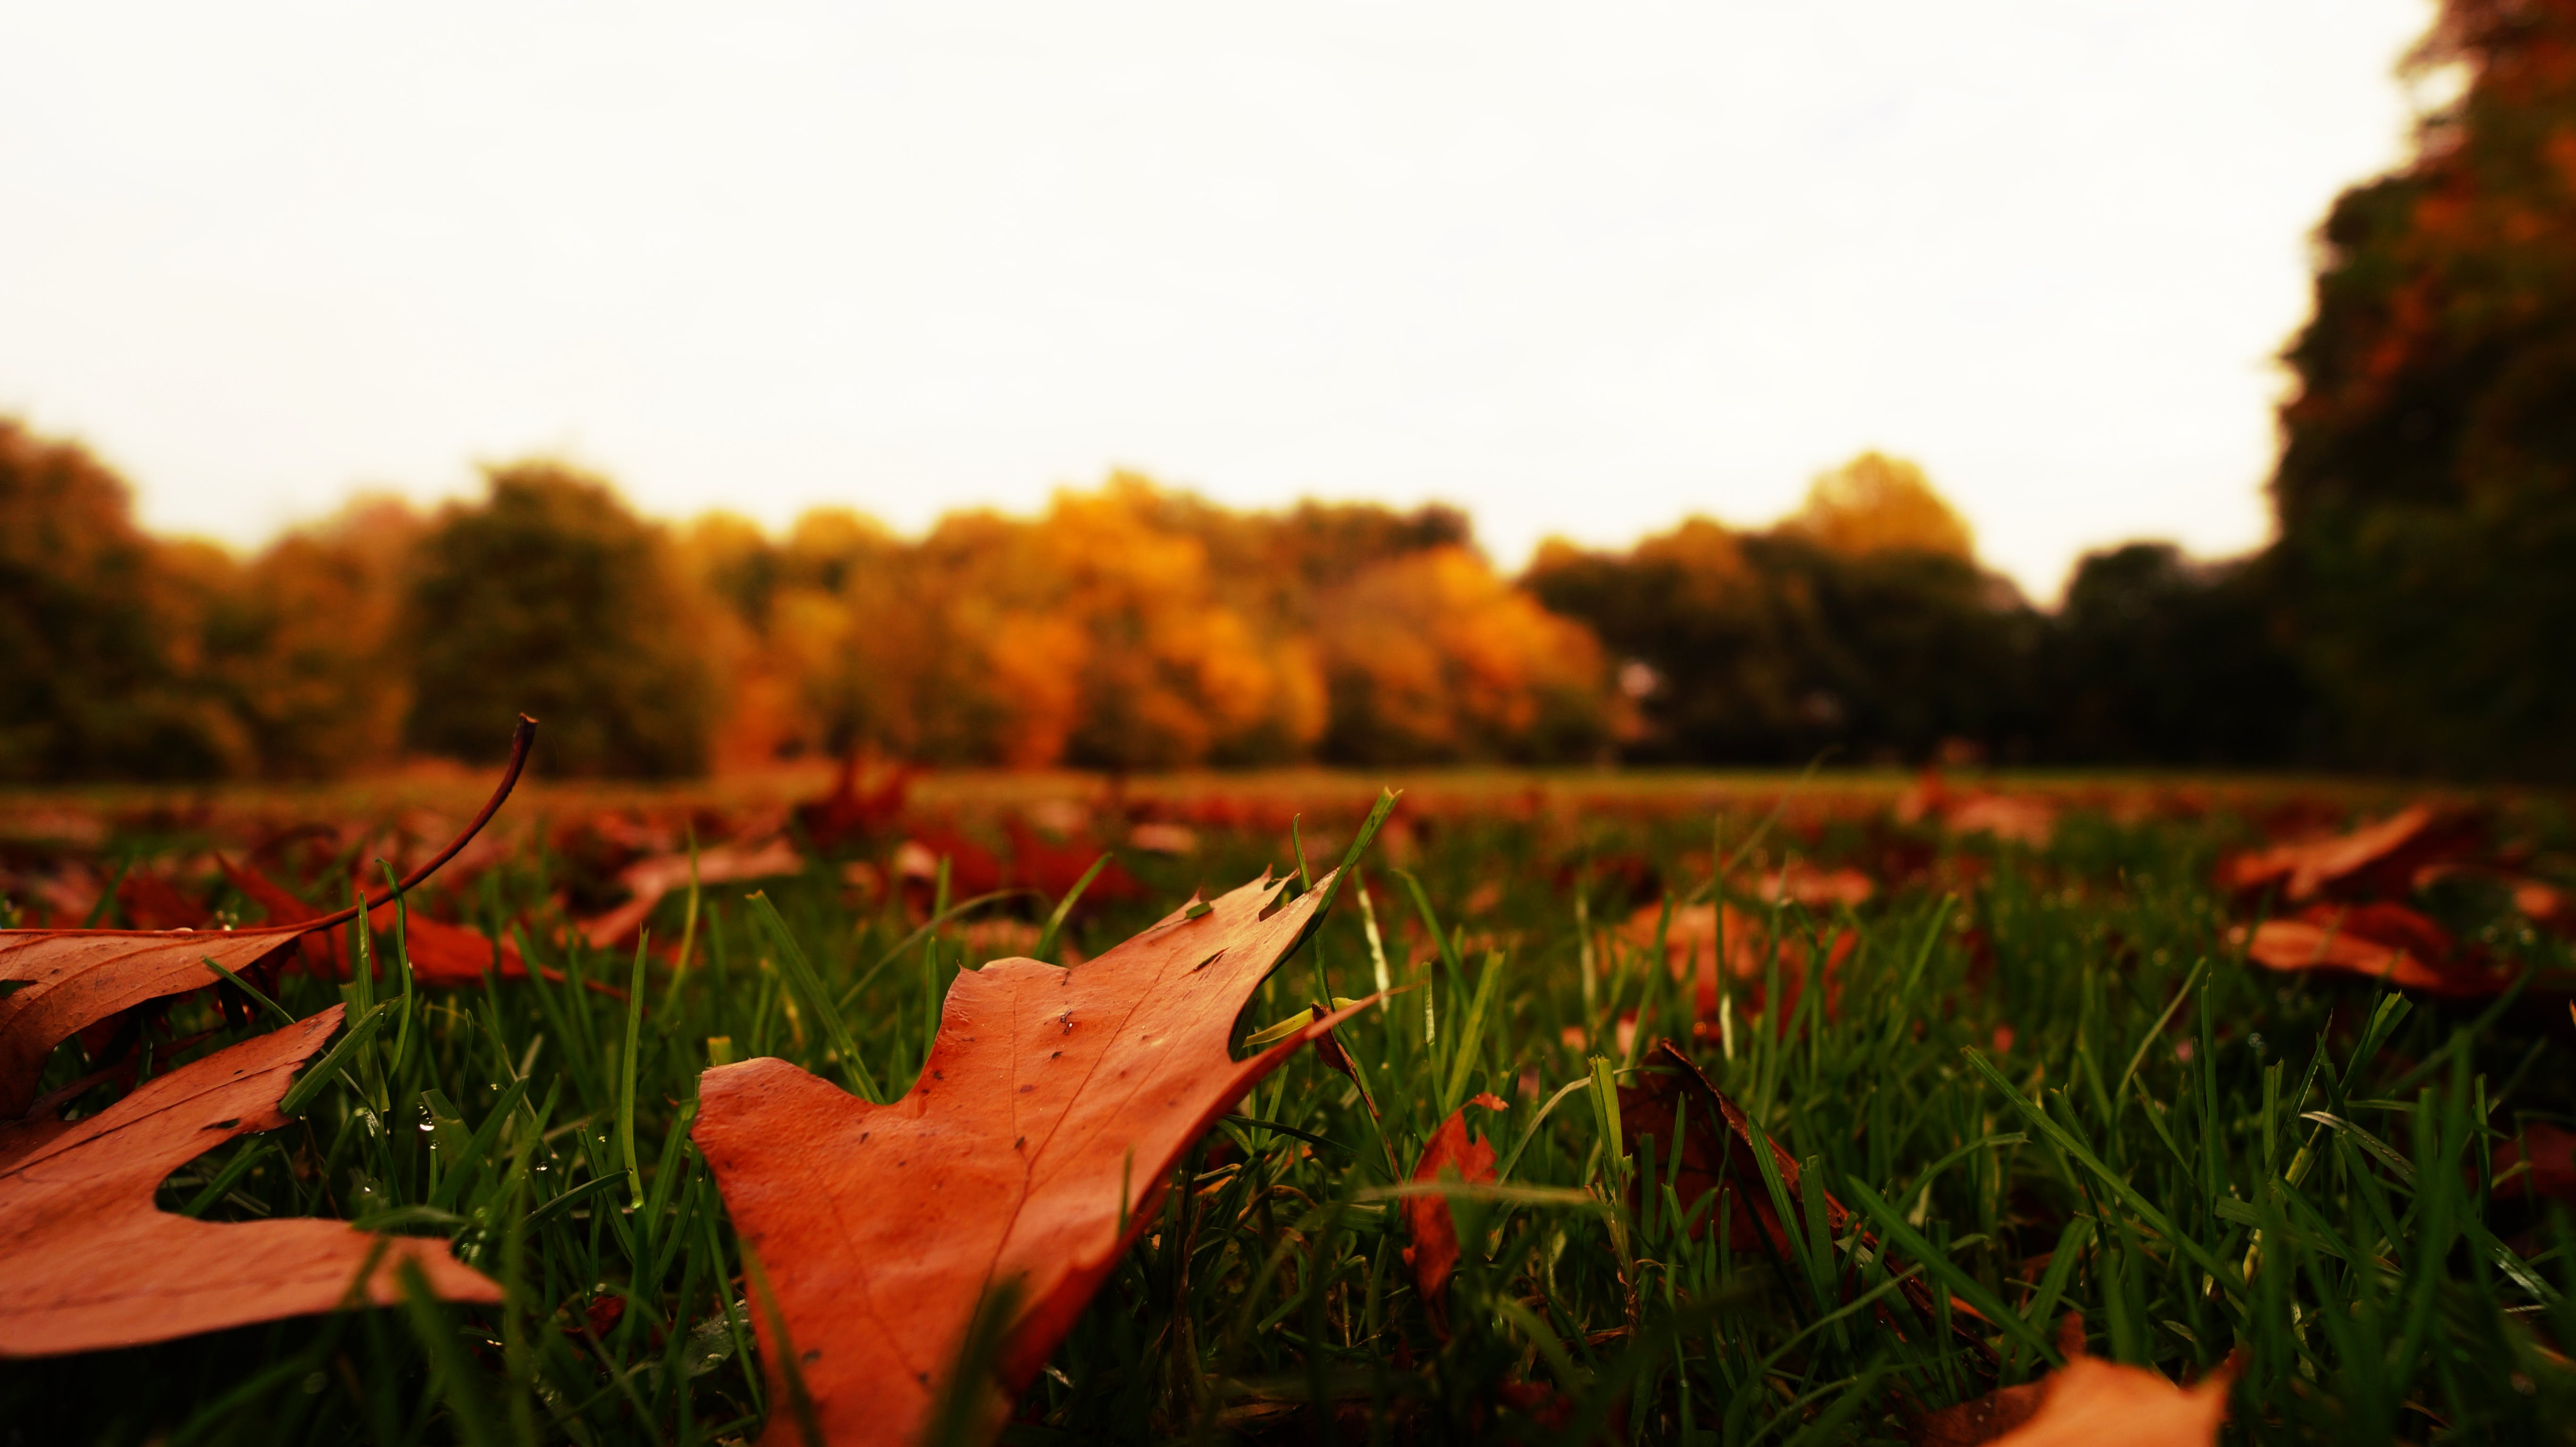 Dried Leaves on Green Grass